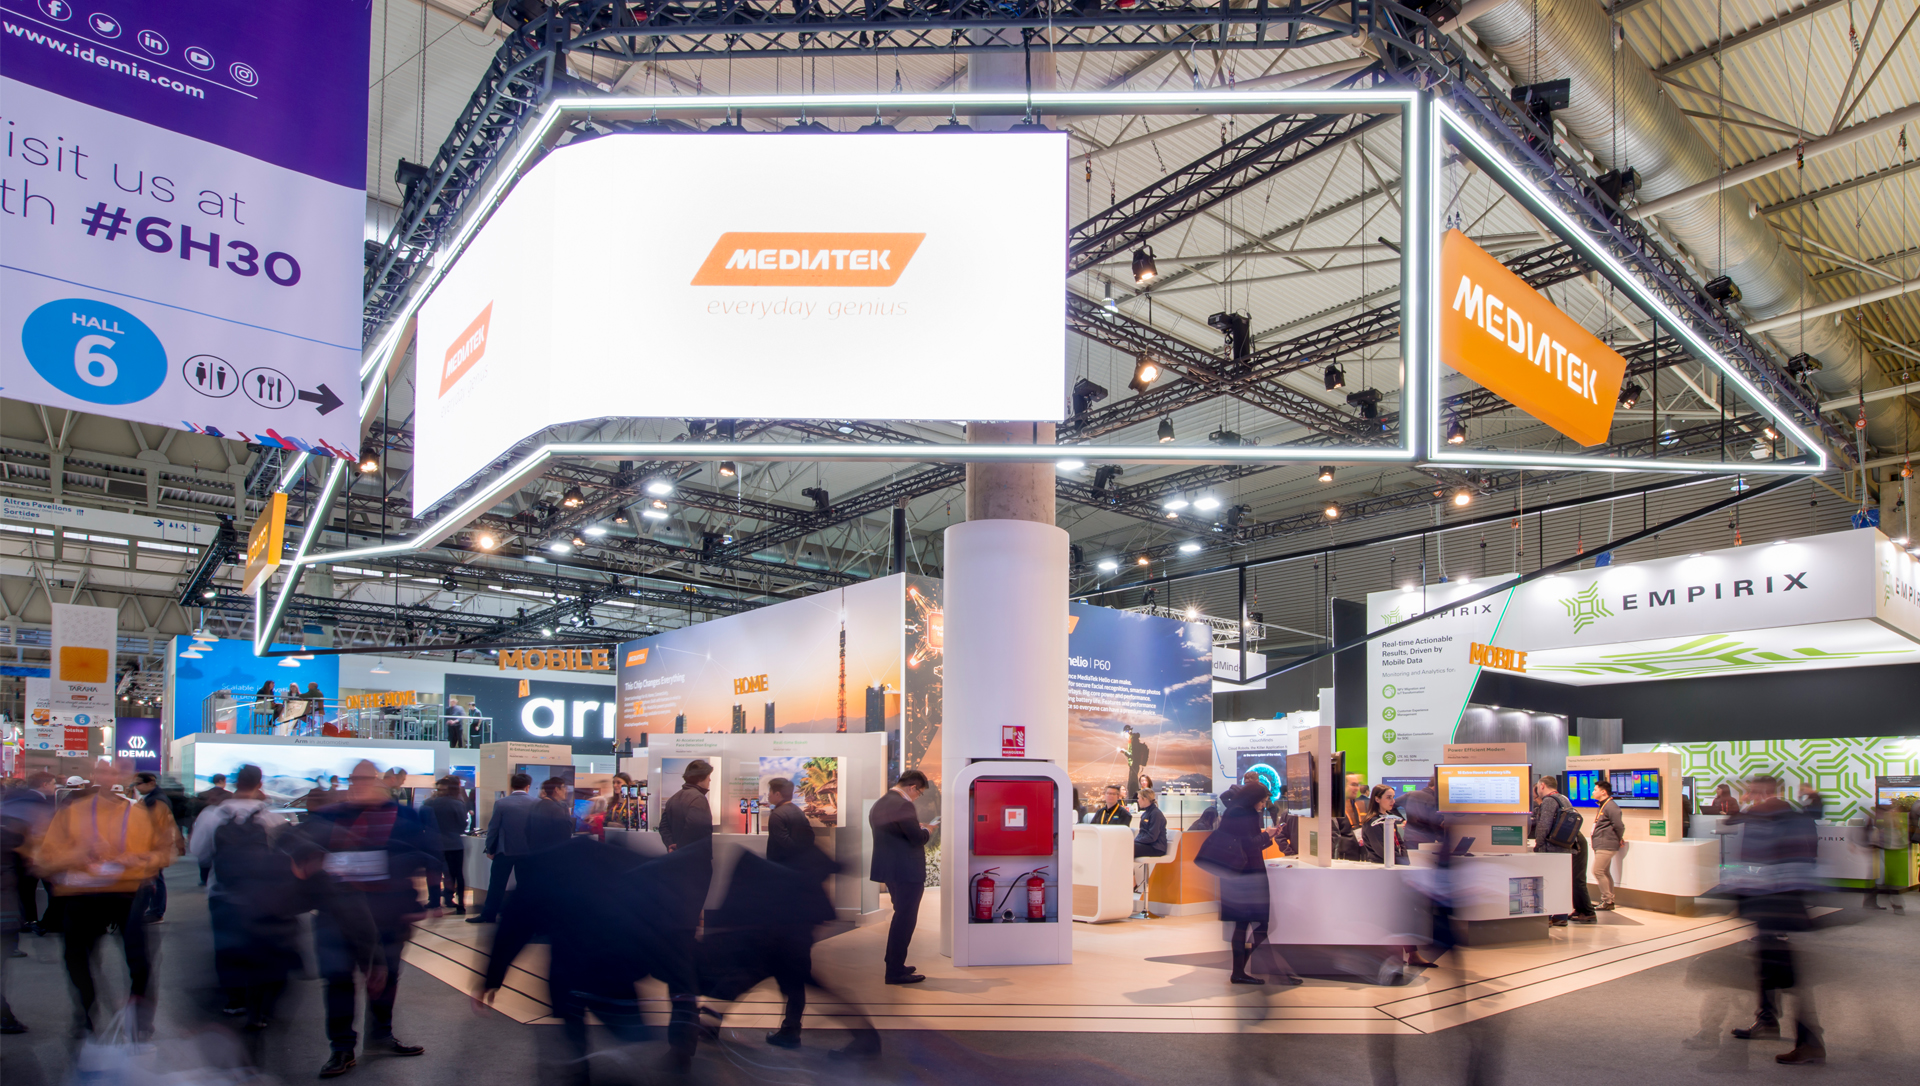 Mediatek exhibition space with brand experience by MCCGLC